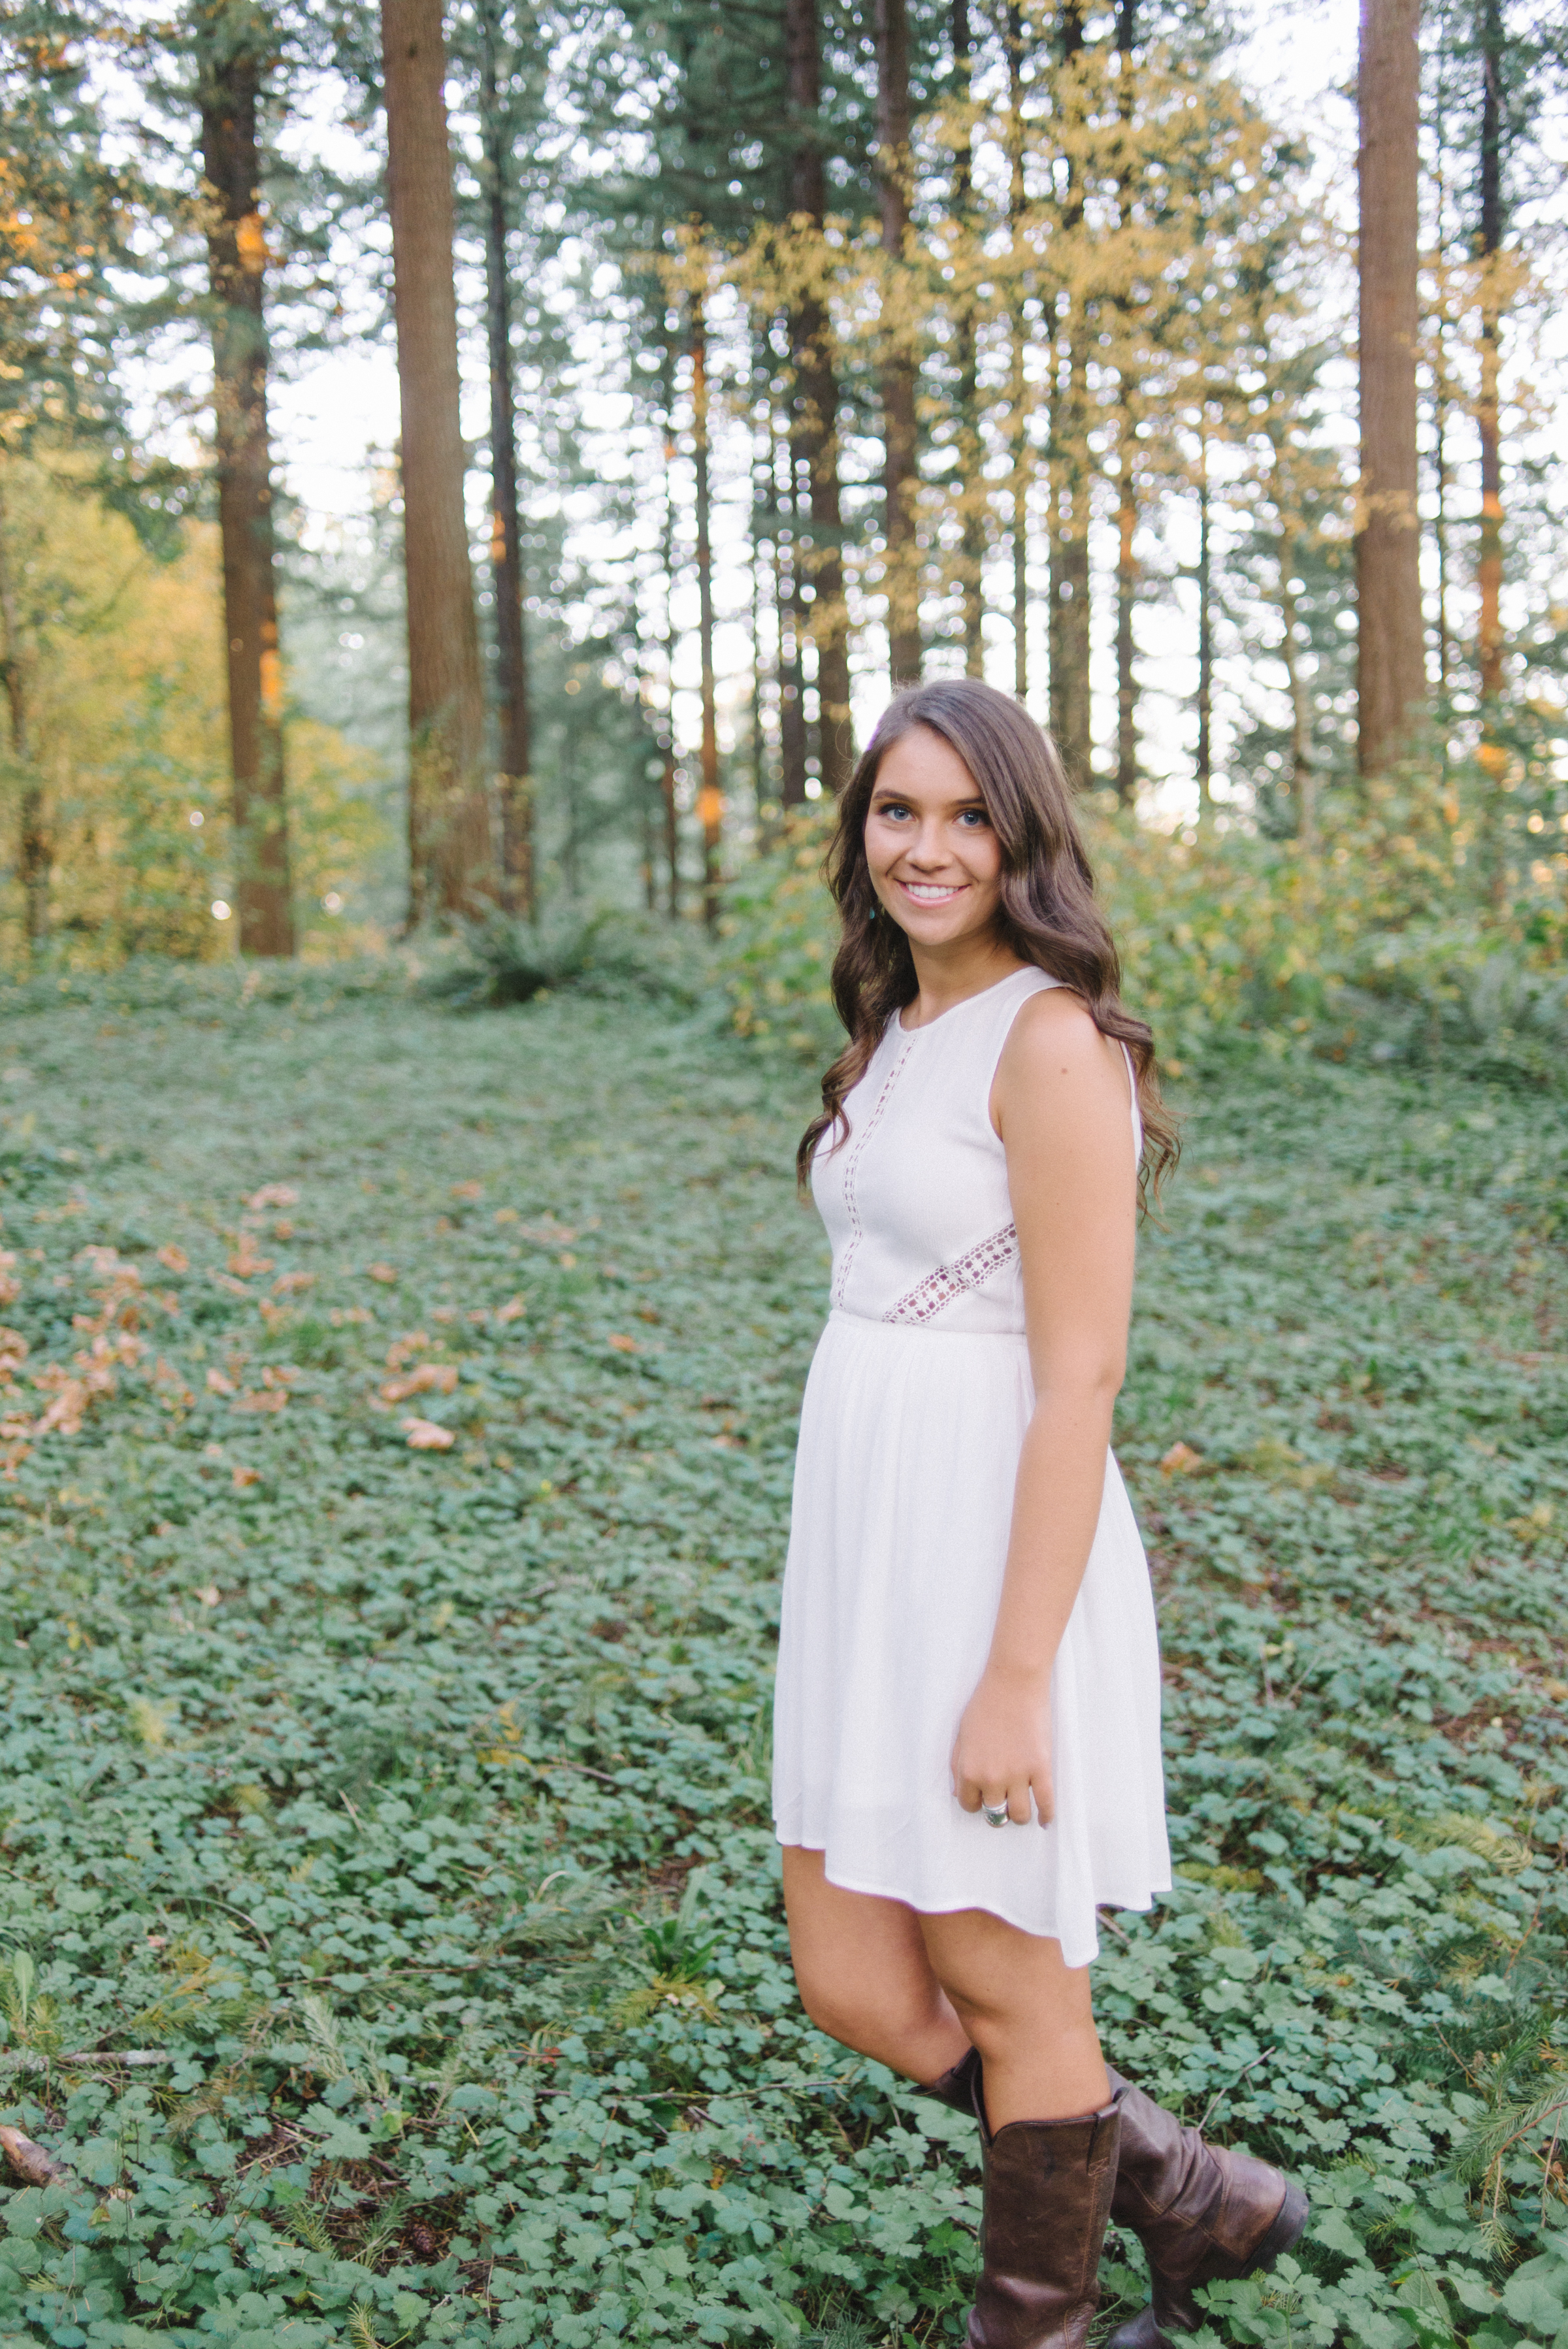 SiennaLochtie_Senior-2014_Hoyt_Arboretum_Washington_Park_Natural_Outdoor_Senior_Portrait_Photography_Portland_Oregon_511.jpg